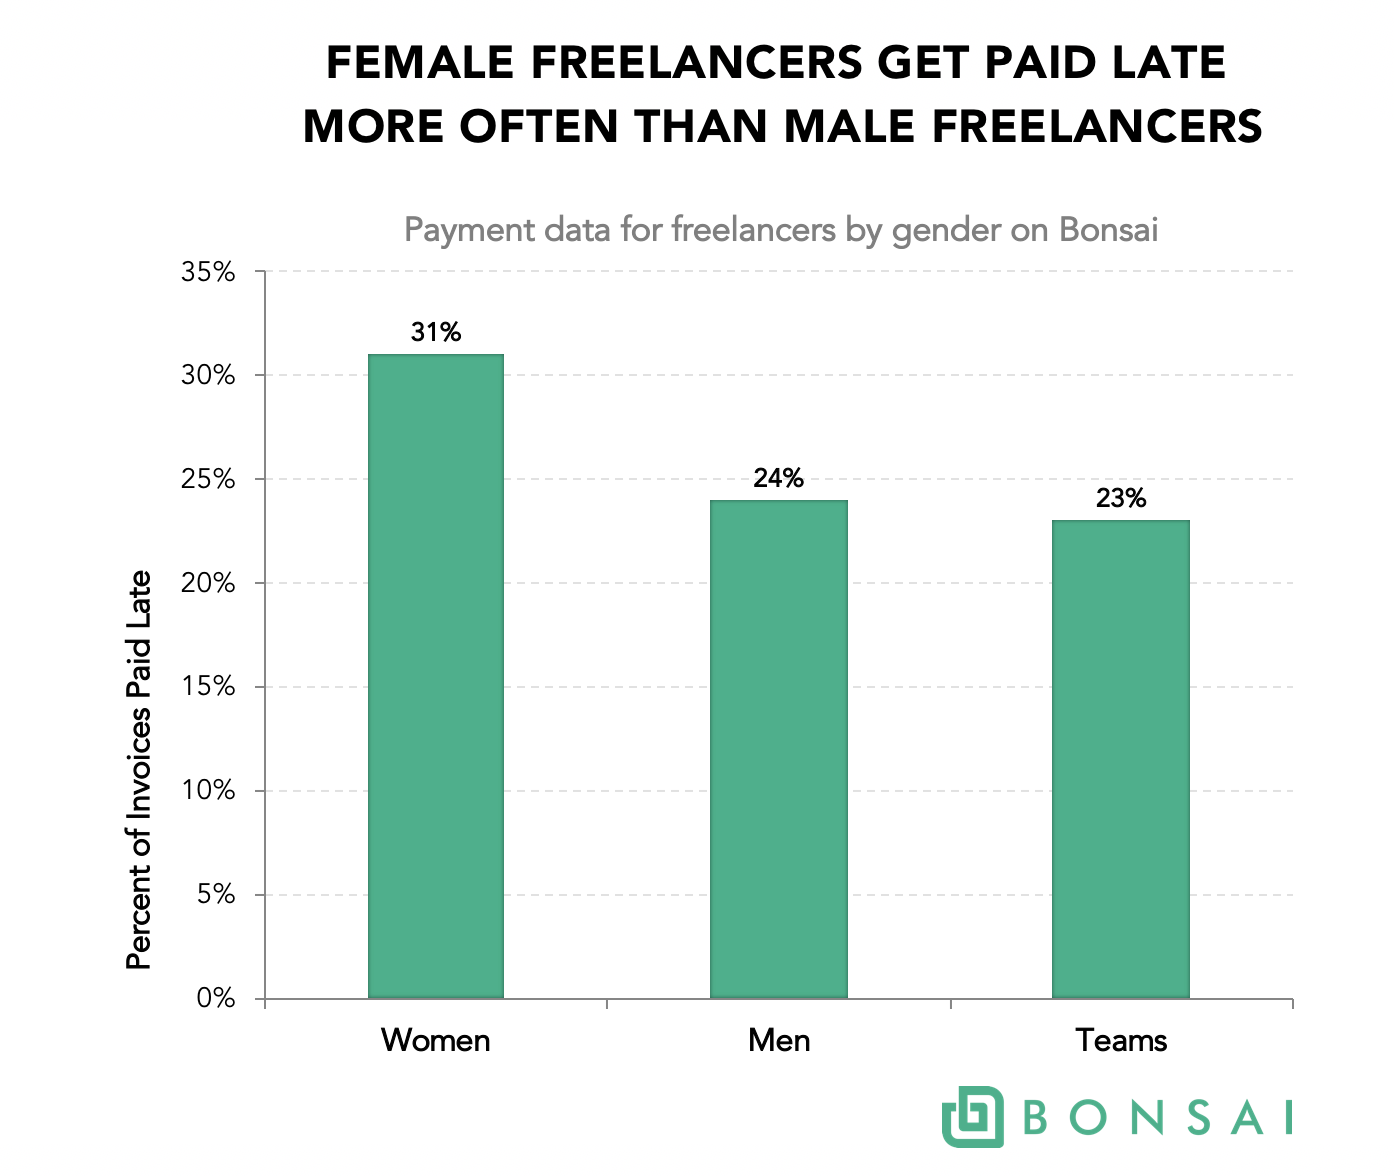 female freelancers get paid late more often